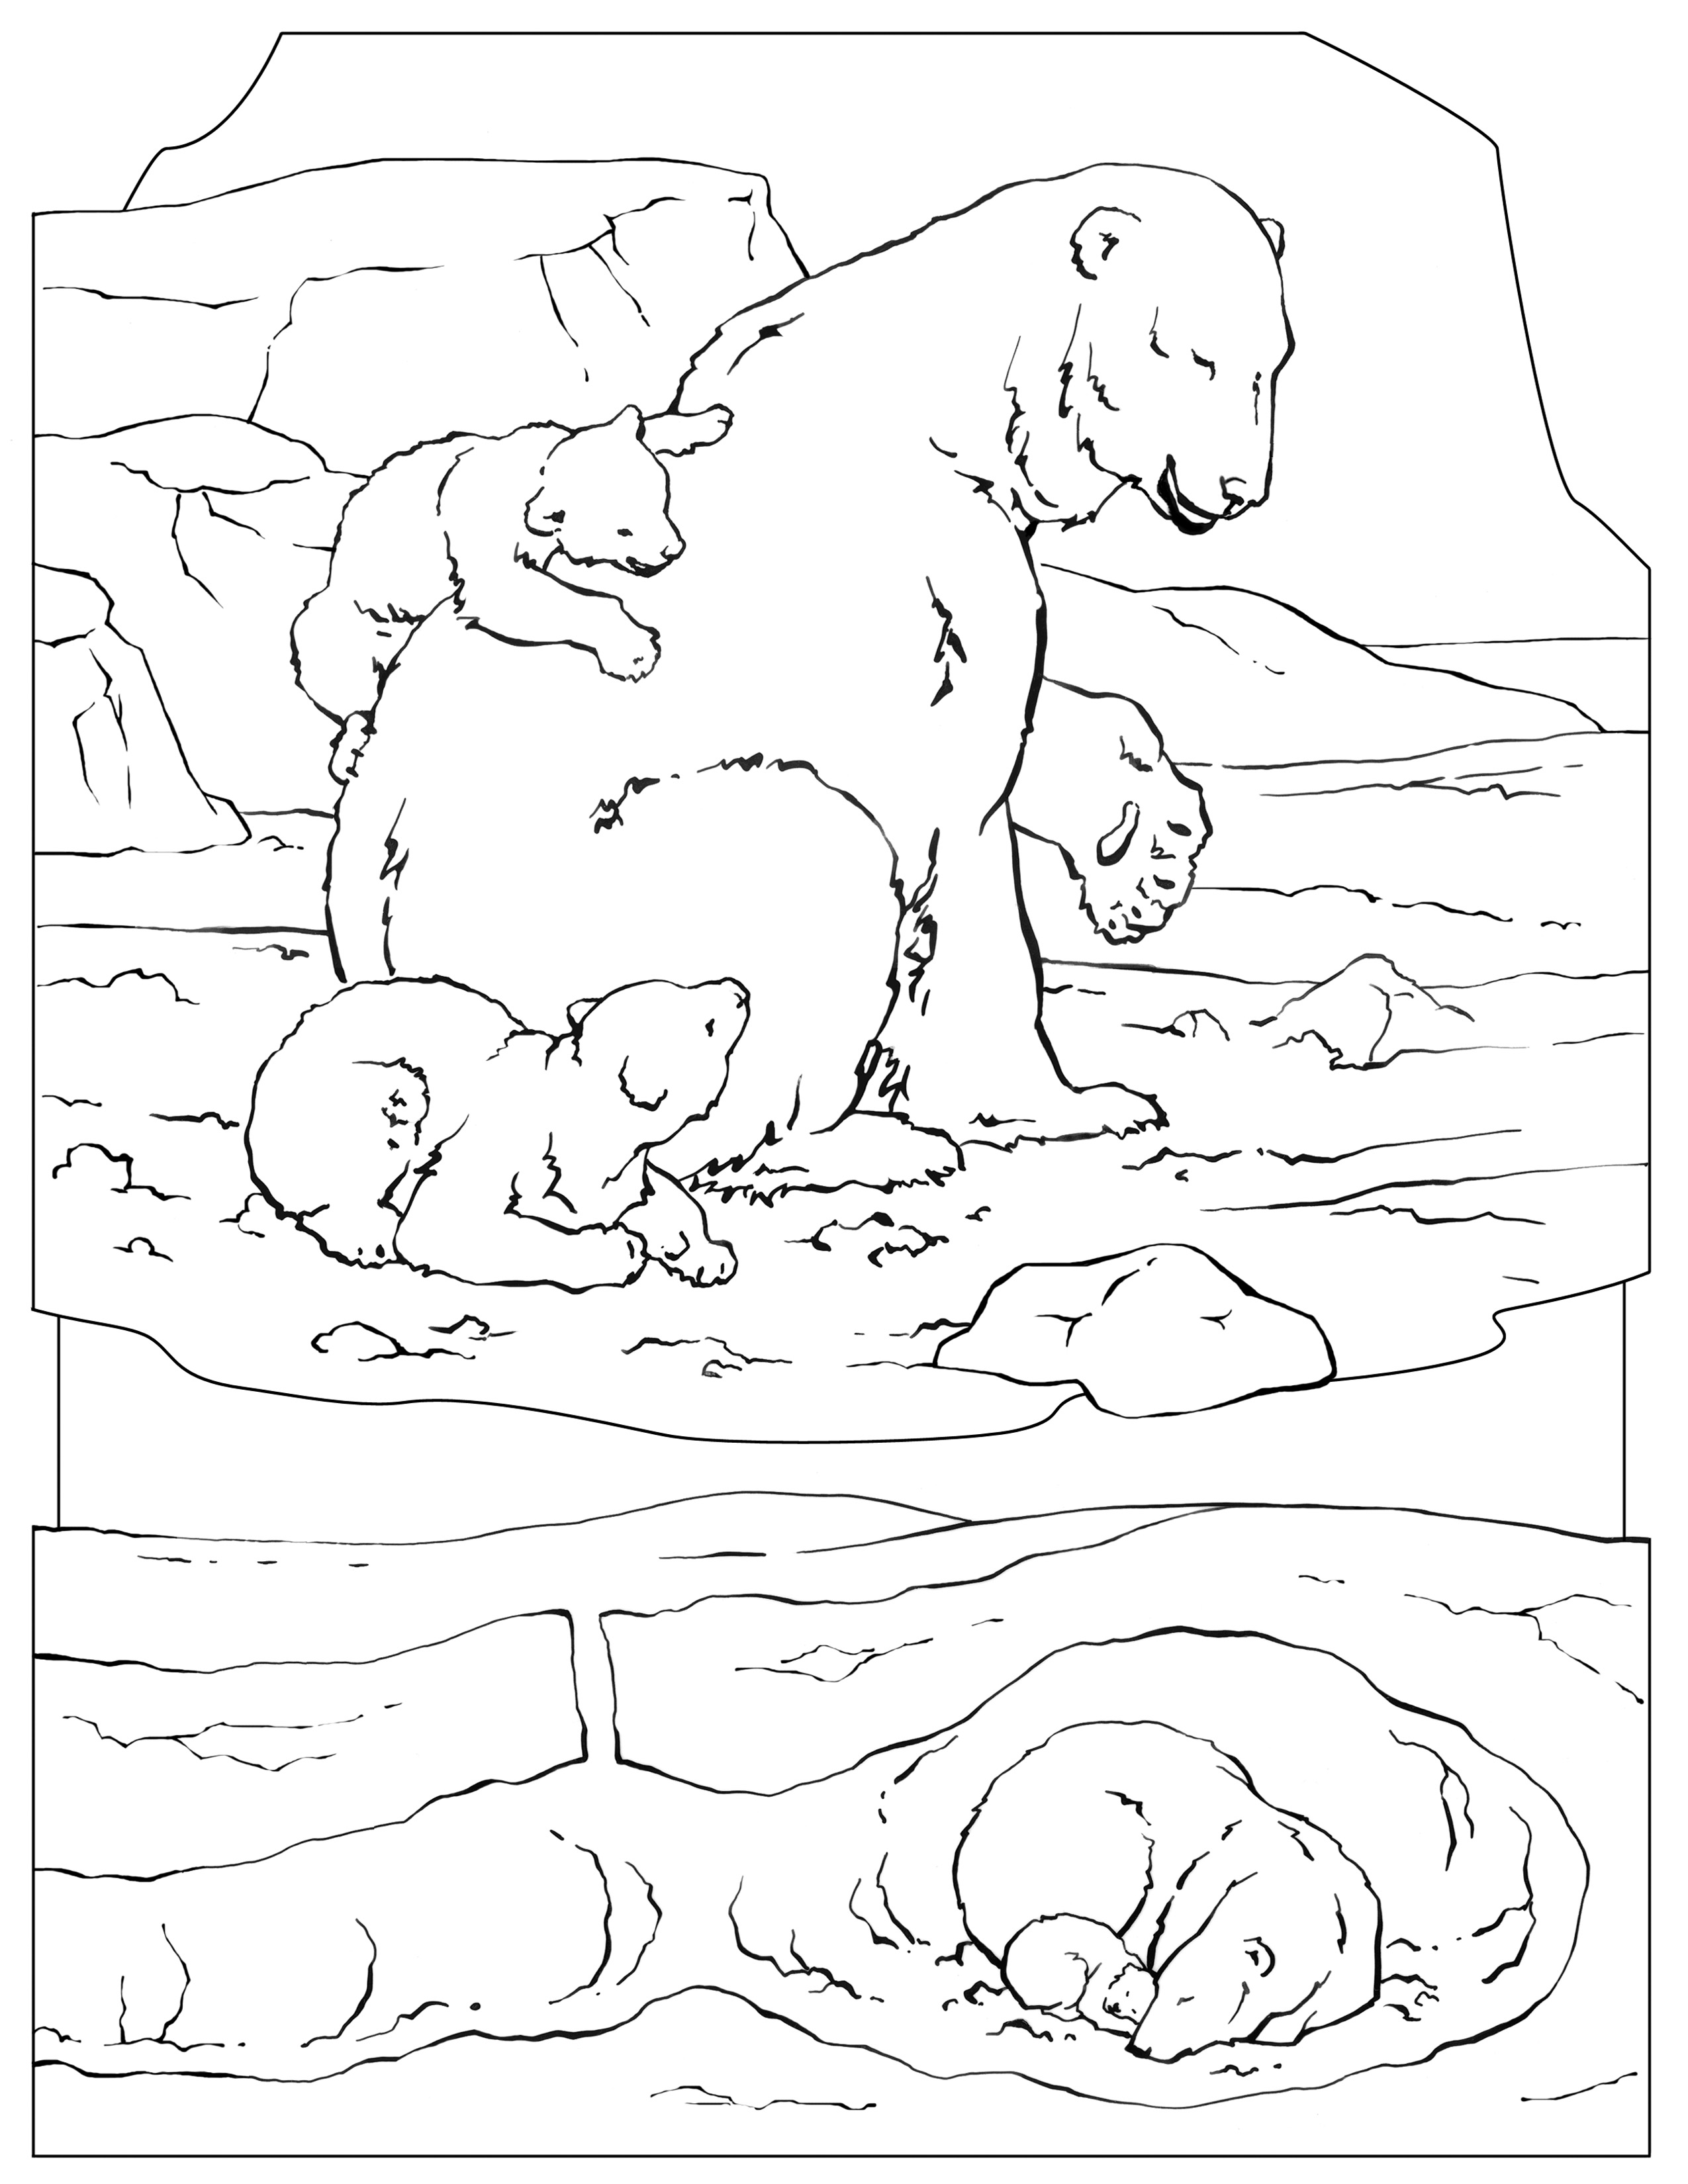 national geographic kids coloring pages national geographic kids coloring pages collection free geographic national kids coloring pages